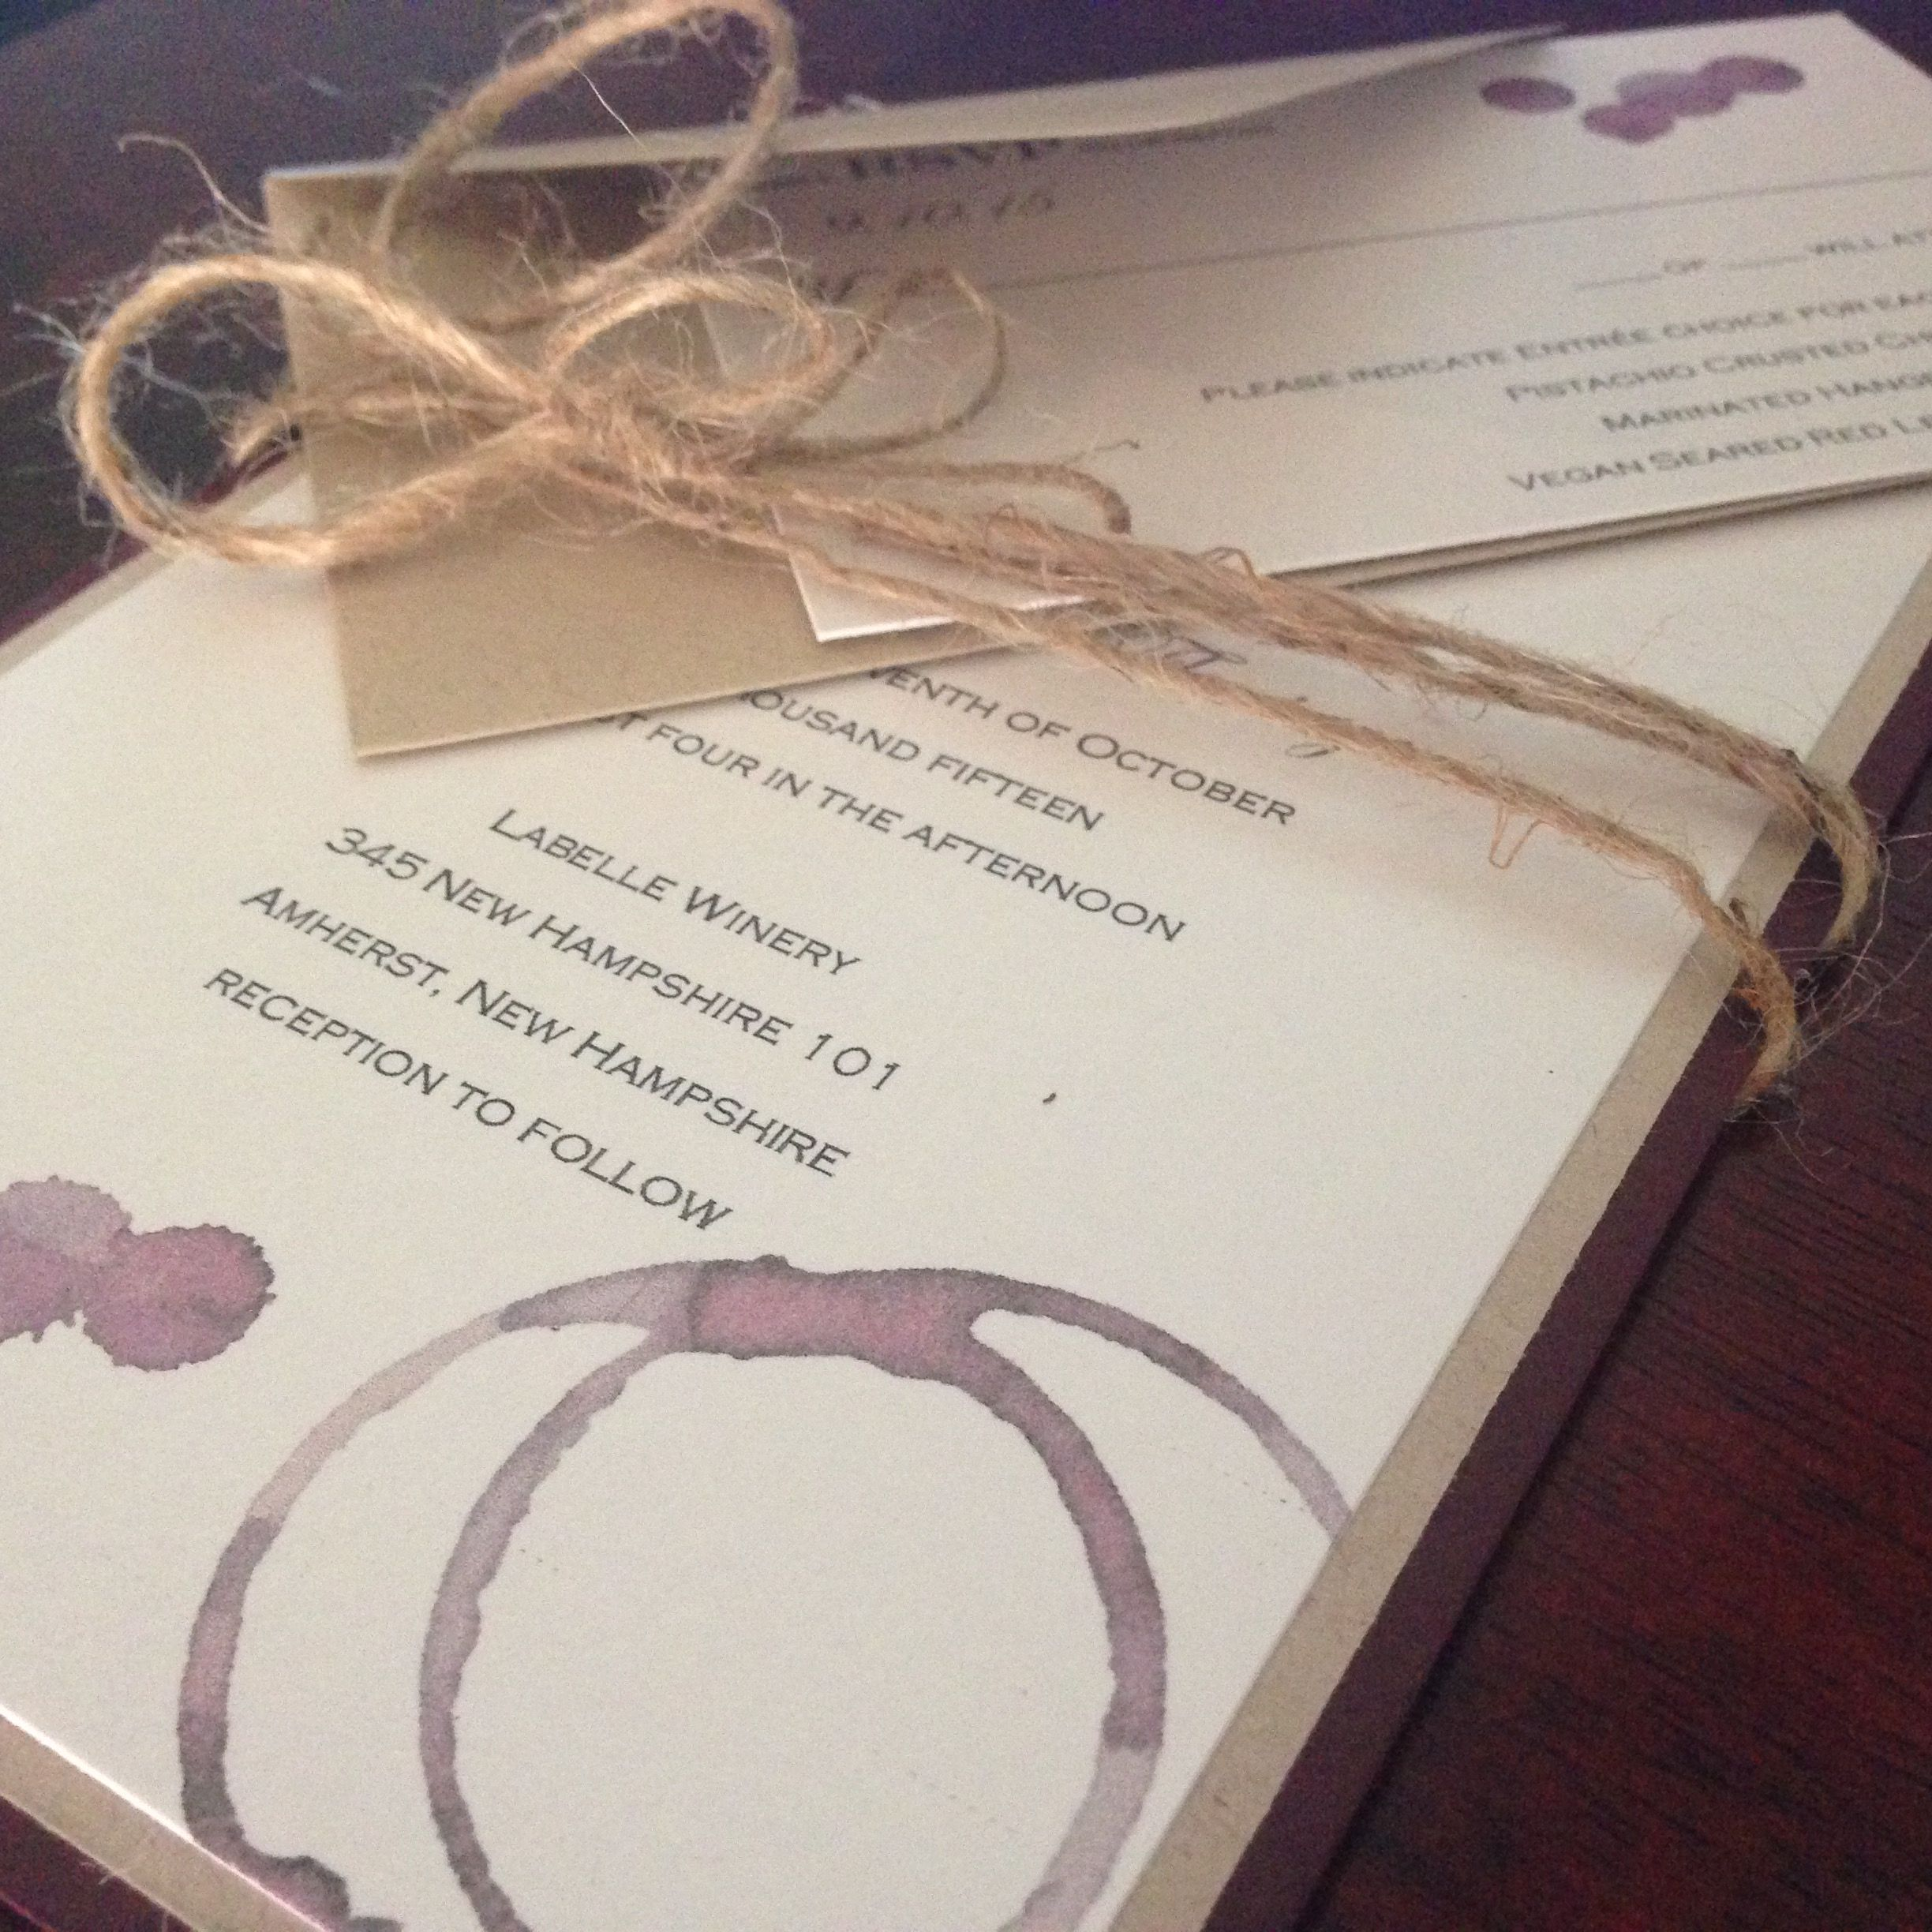 Wine Stained Wedding Invitations For This Winery Wedding By The~Lil~Things  Las Vegas